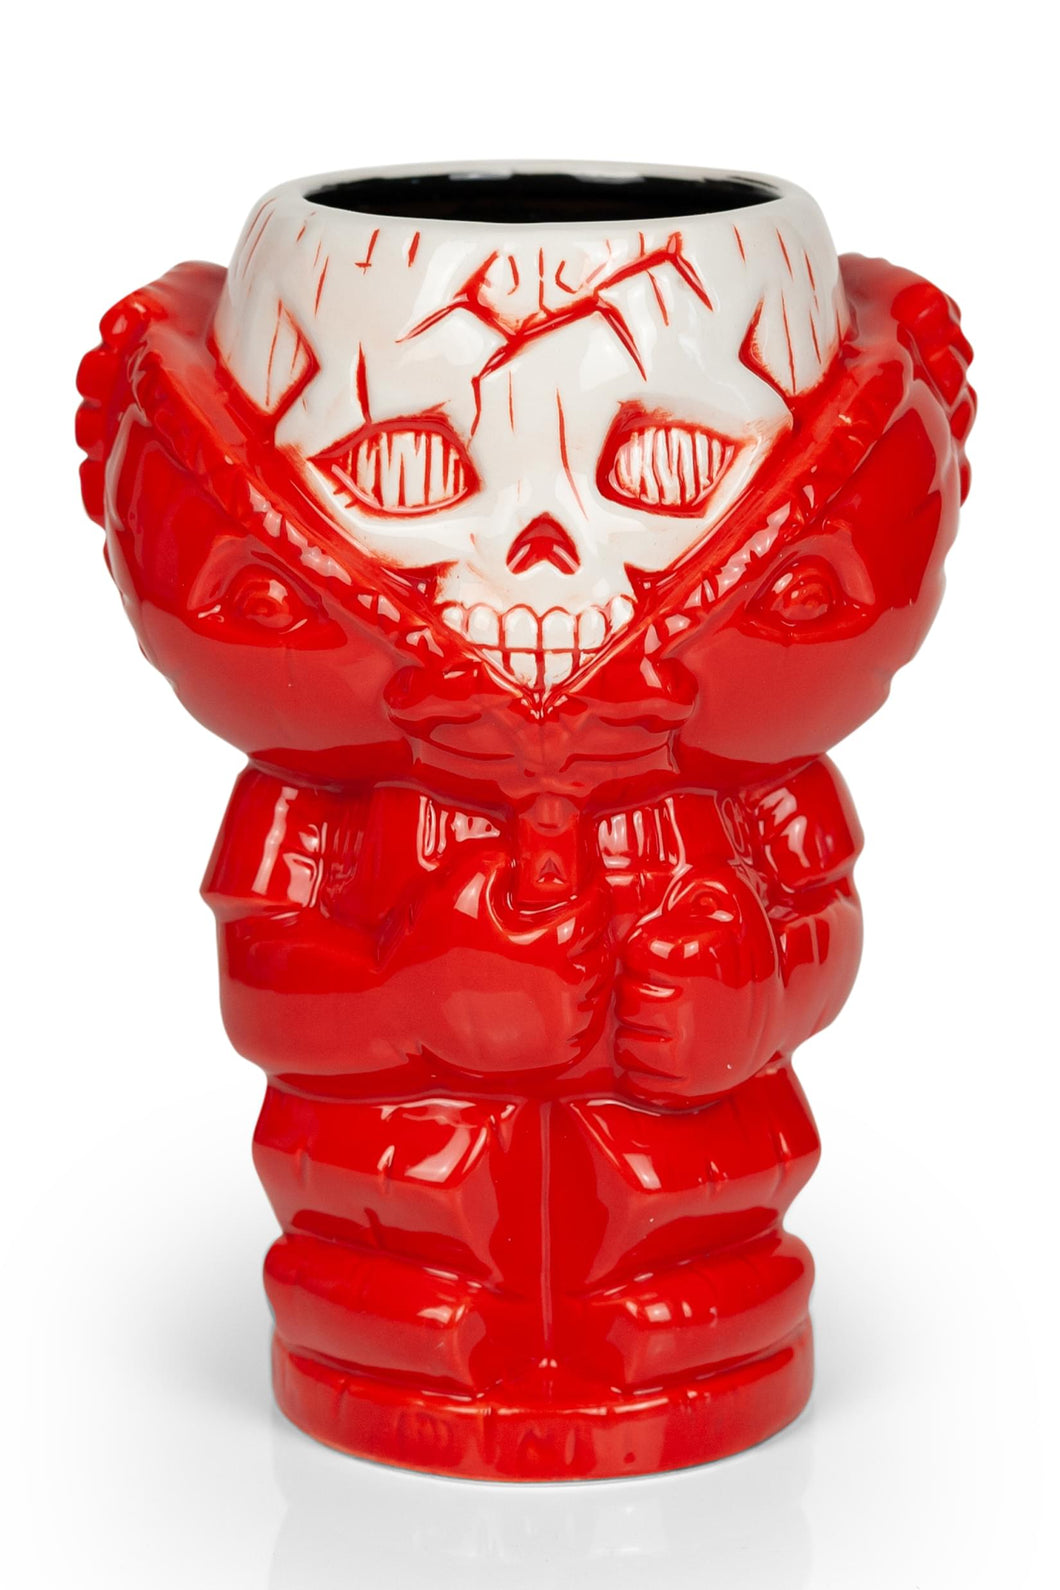 Geeki Tikis Garbage Pail Kids GPK Bony Tony Mug Ceramic Tiki Style Cup 22 Ounces | Set Includes Trading Card